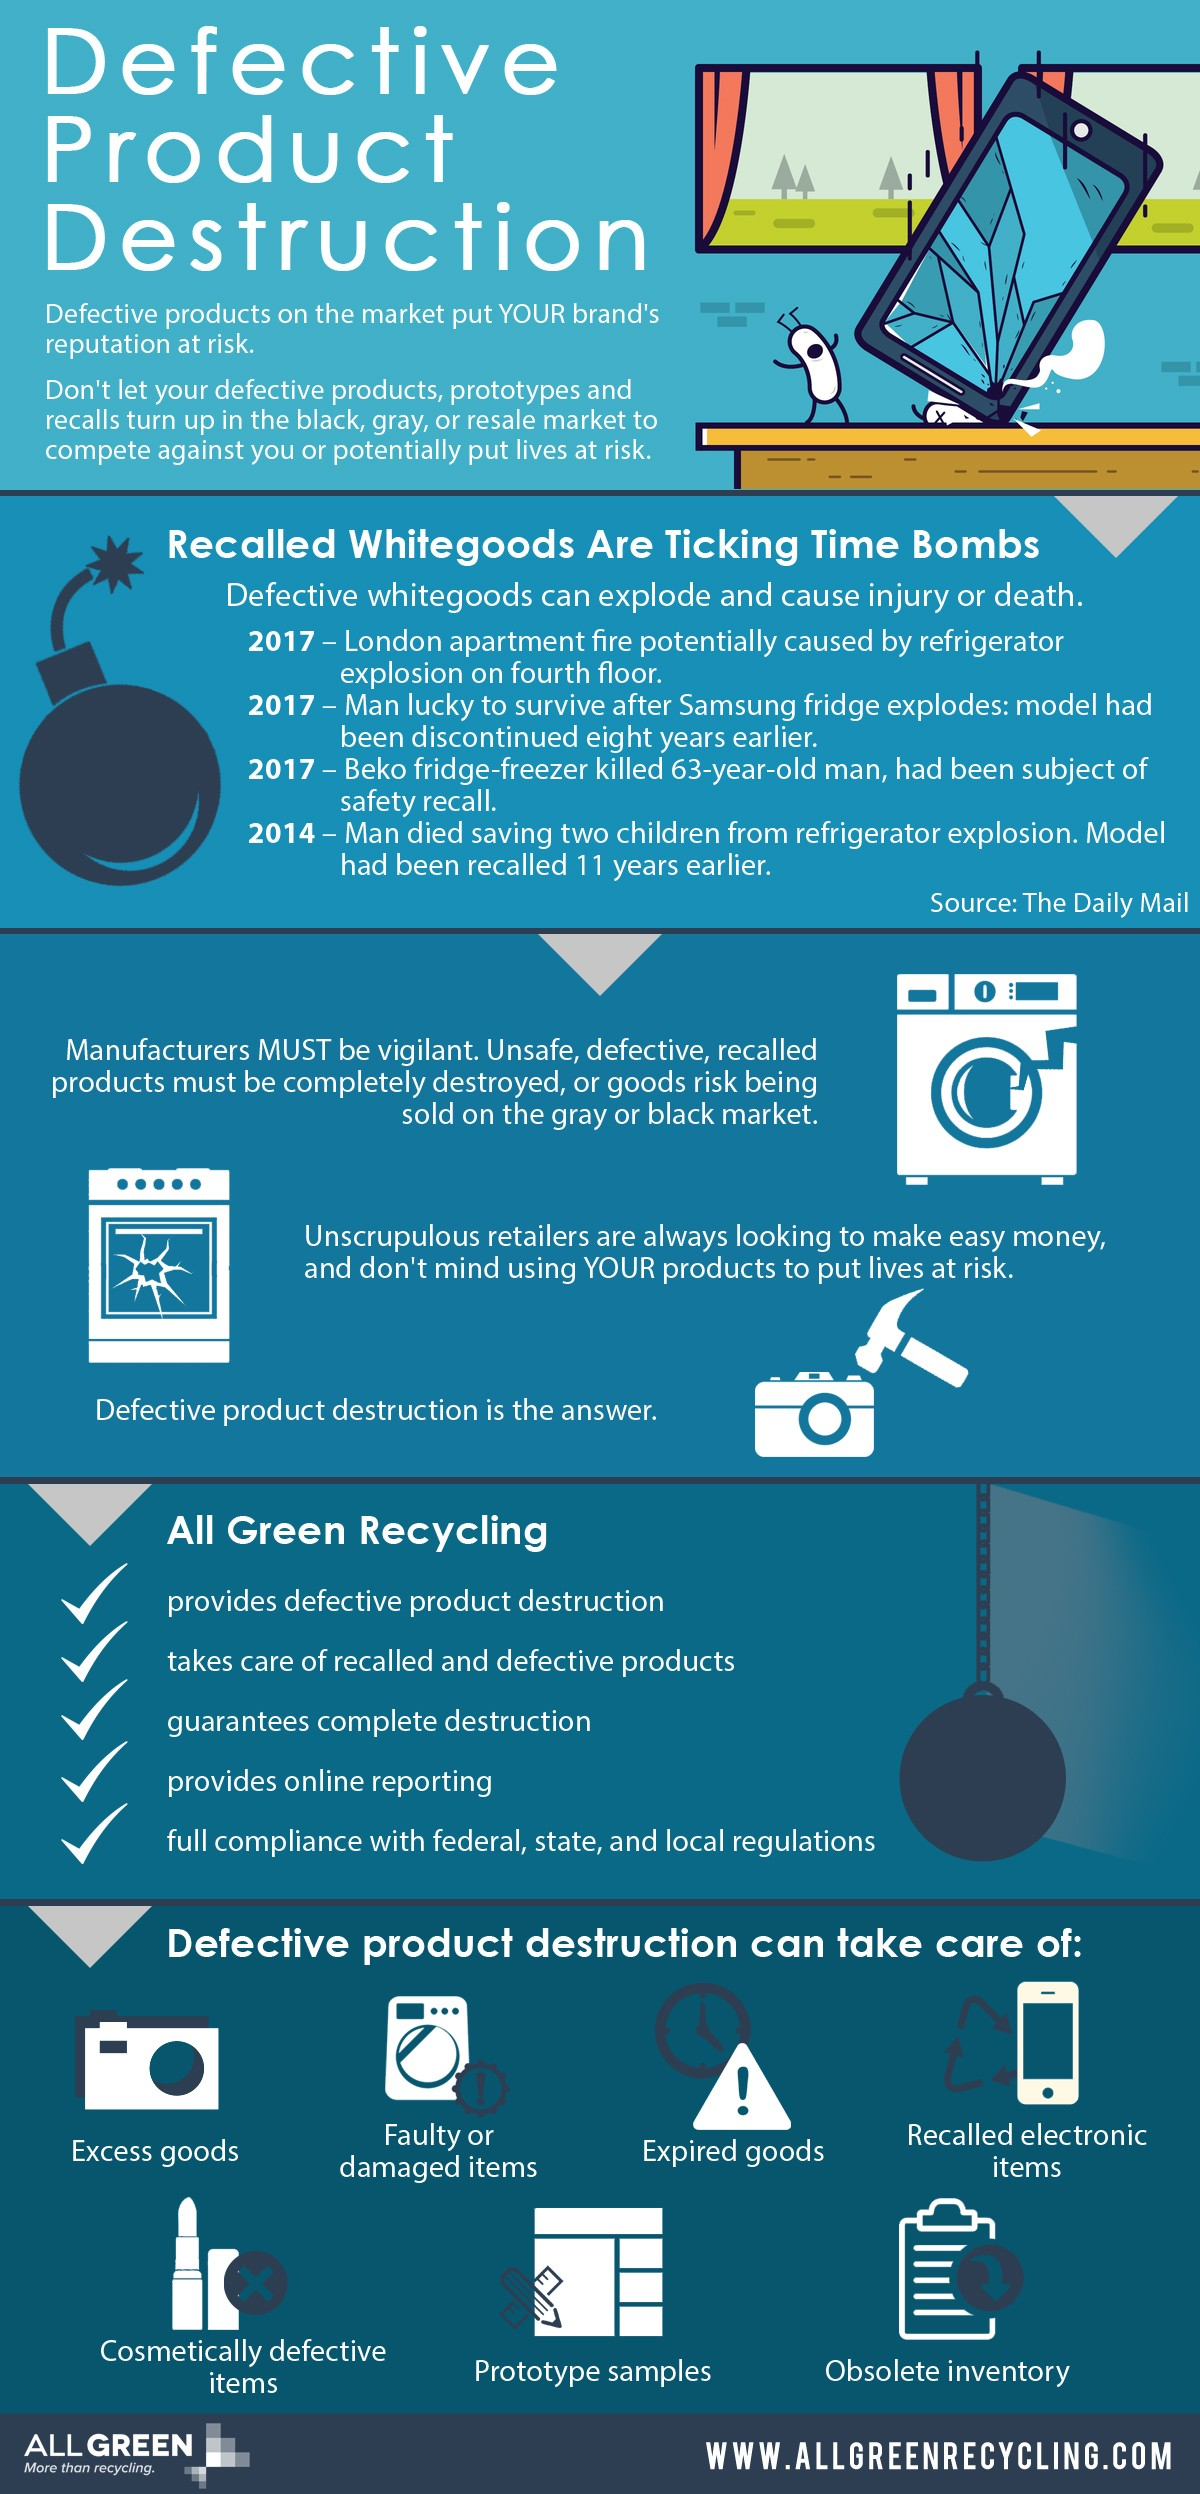 Defective Product Destruction Infographic - AGR